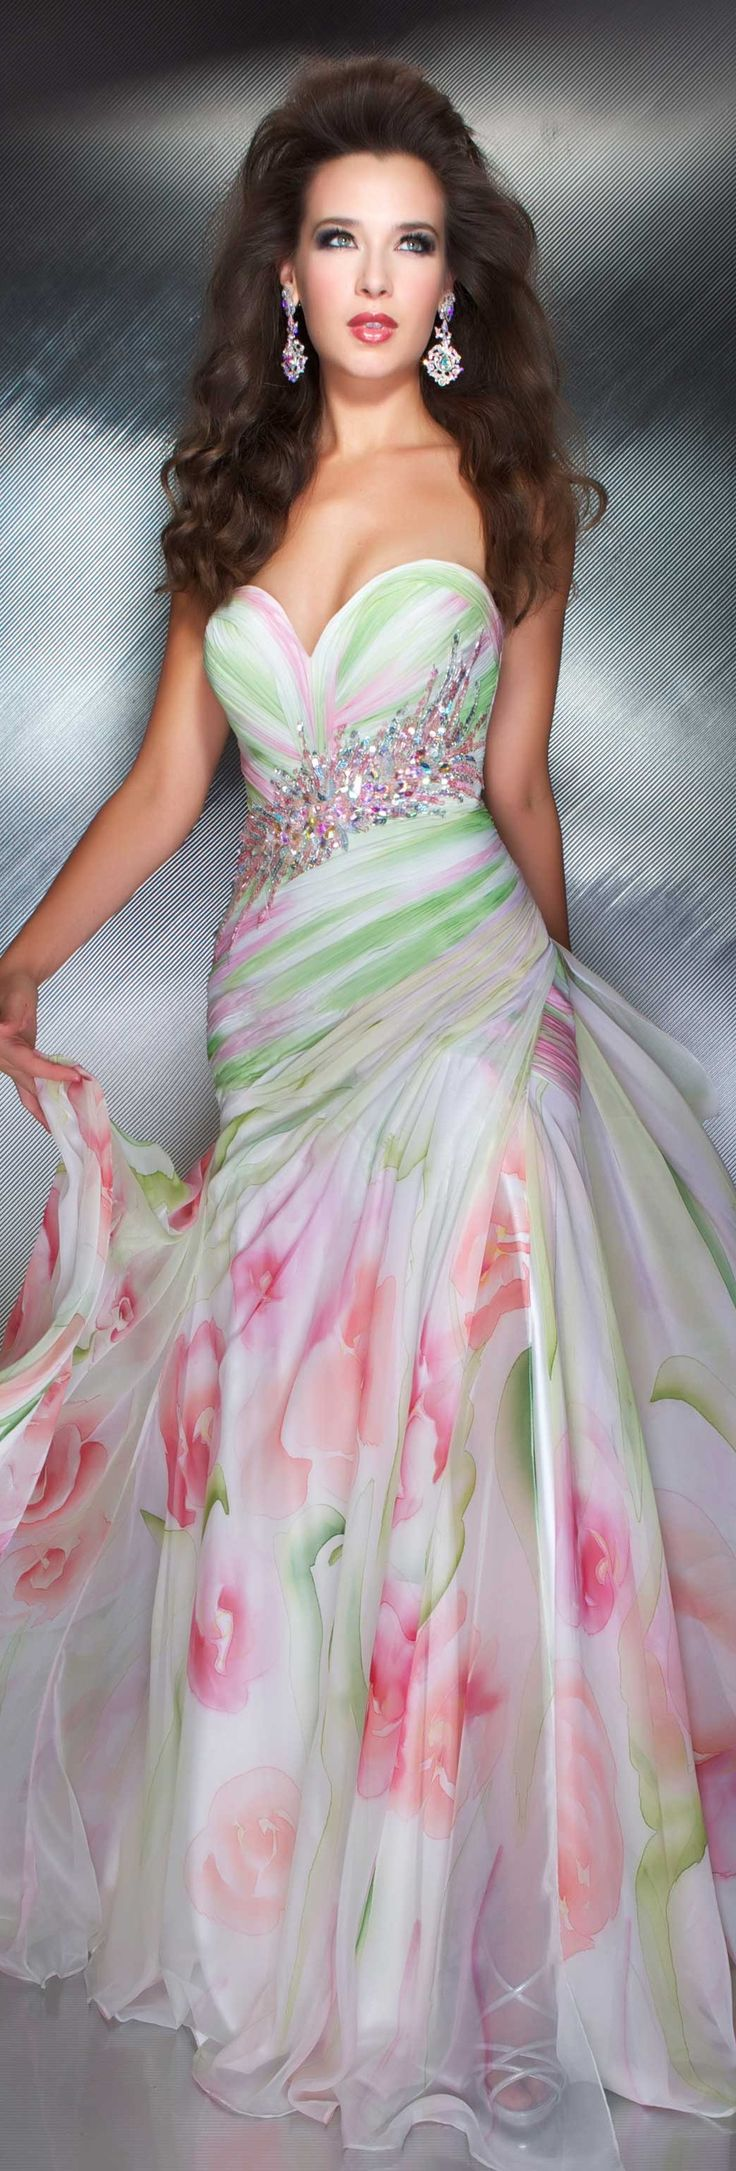 Strapless Sweetheart Gown by Mac Duggal Prom / Miss Dressy